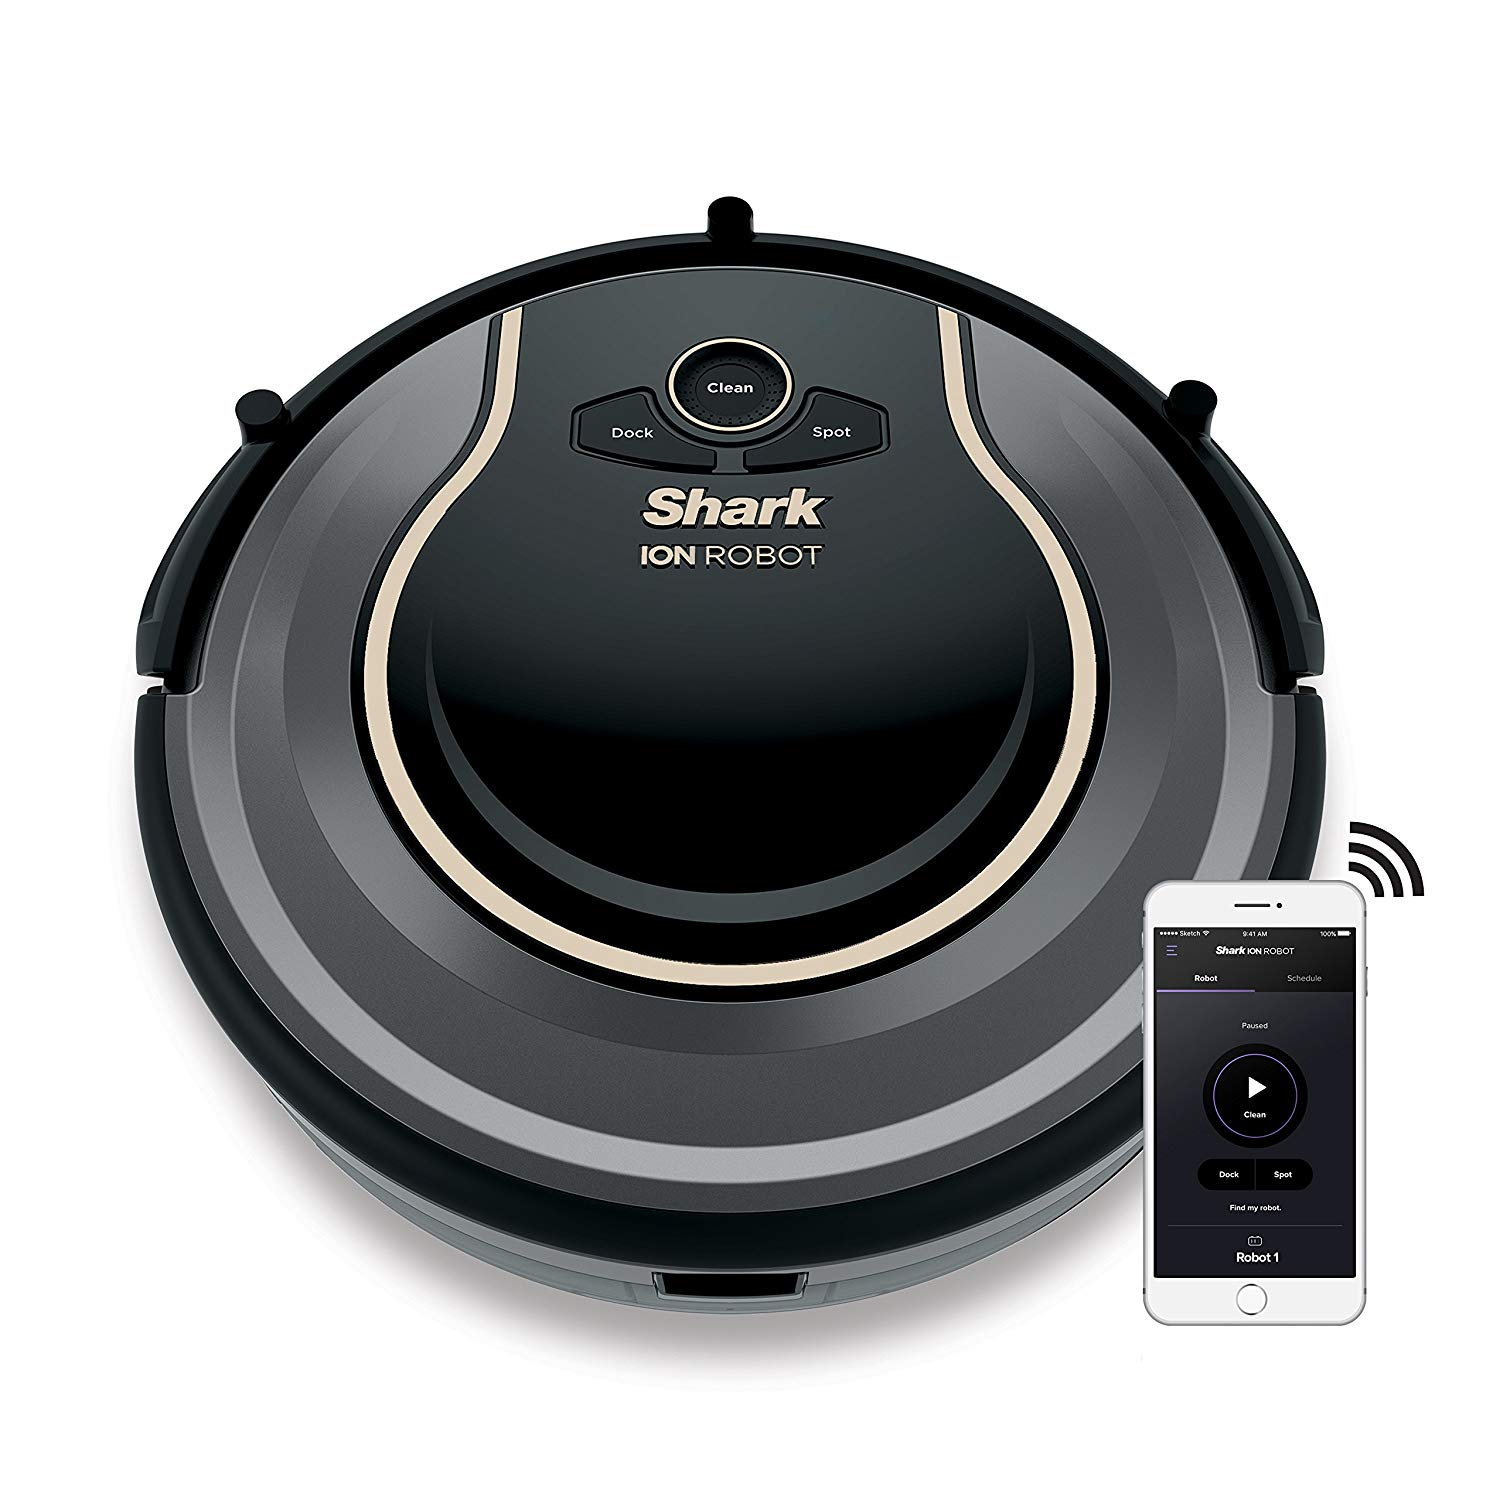 Shark Ion Robot R75 Rv750 Specifications And Comparison